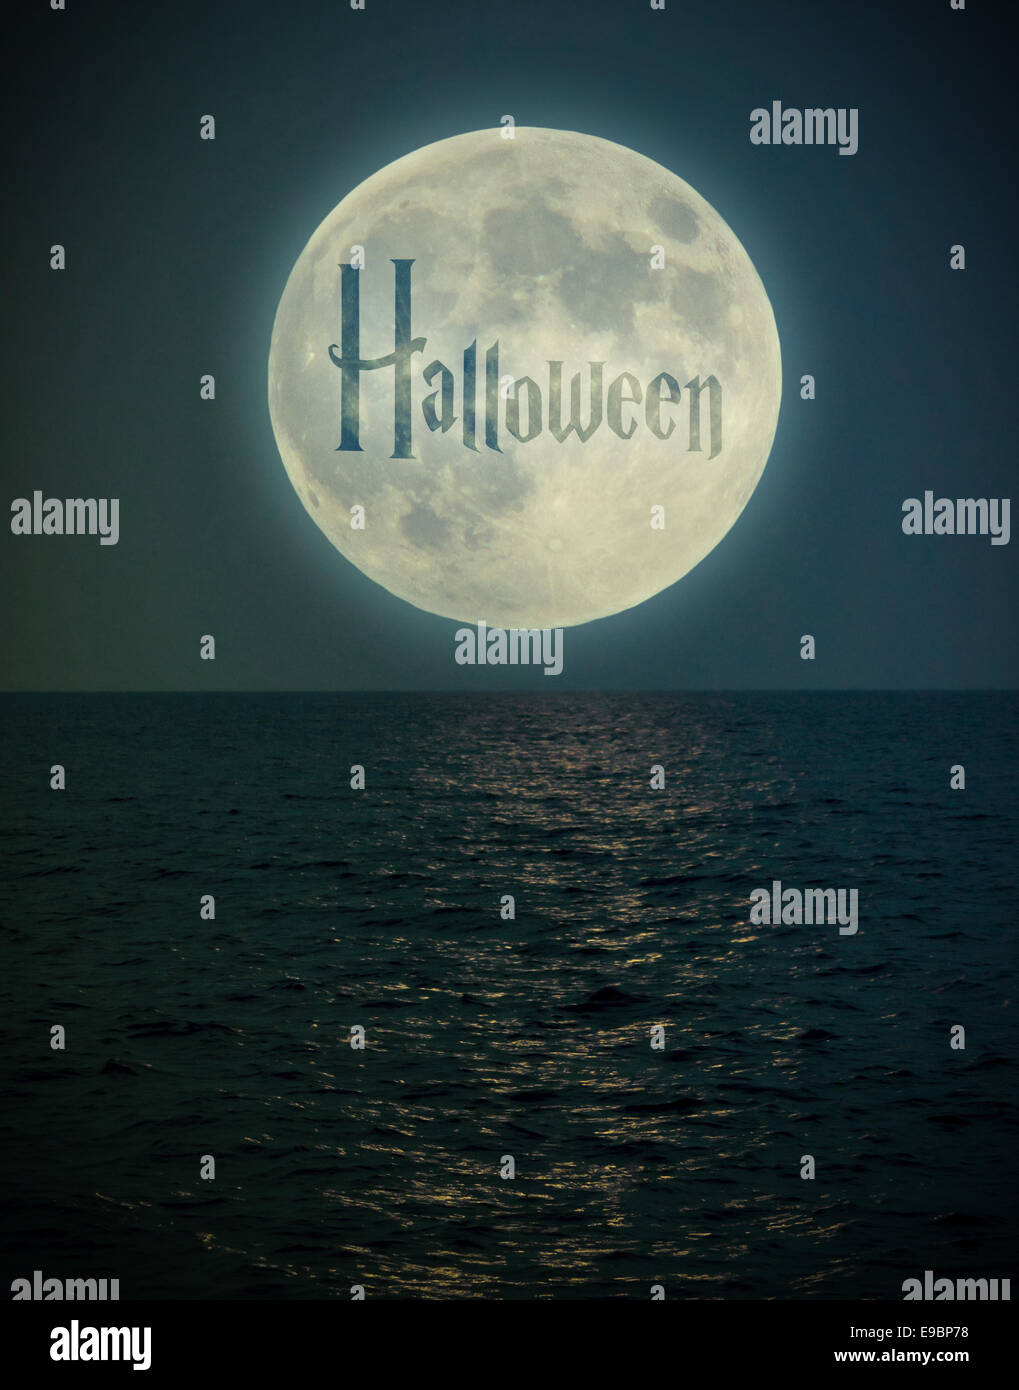 Halloween full super moon under the sea getting the light on water - Stock Image